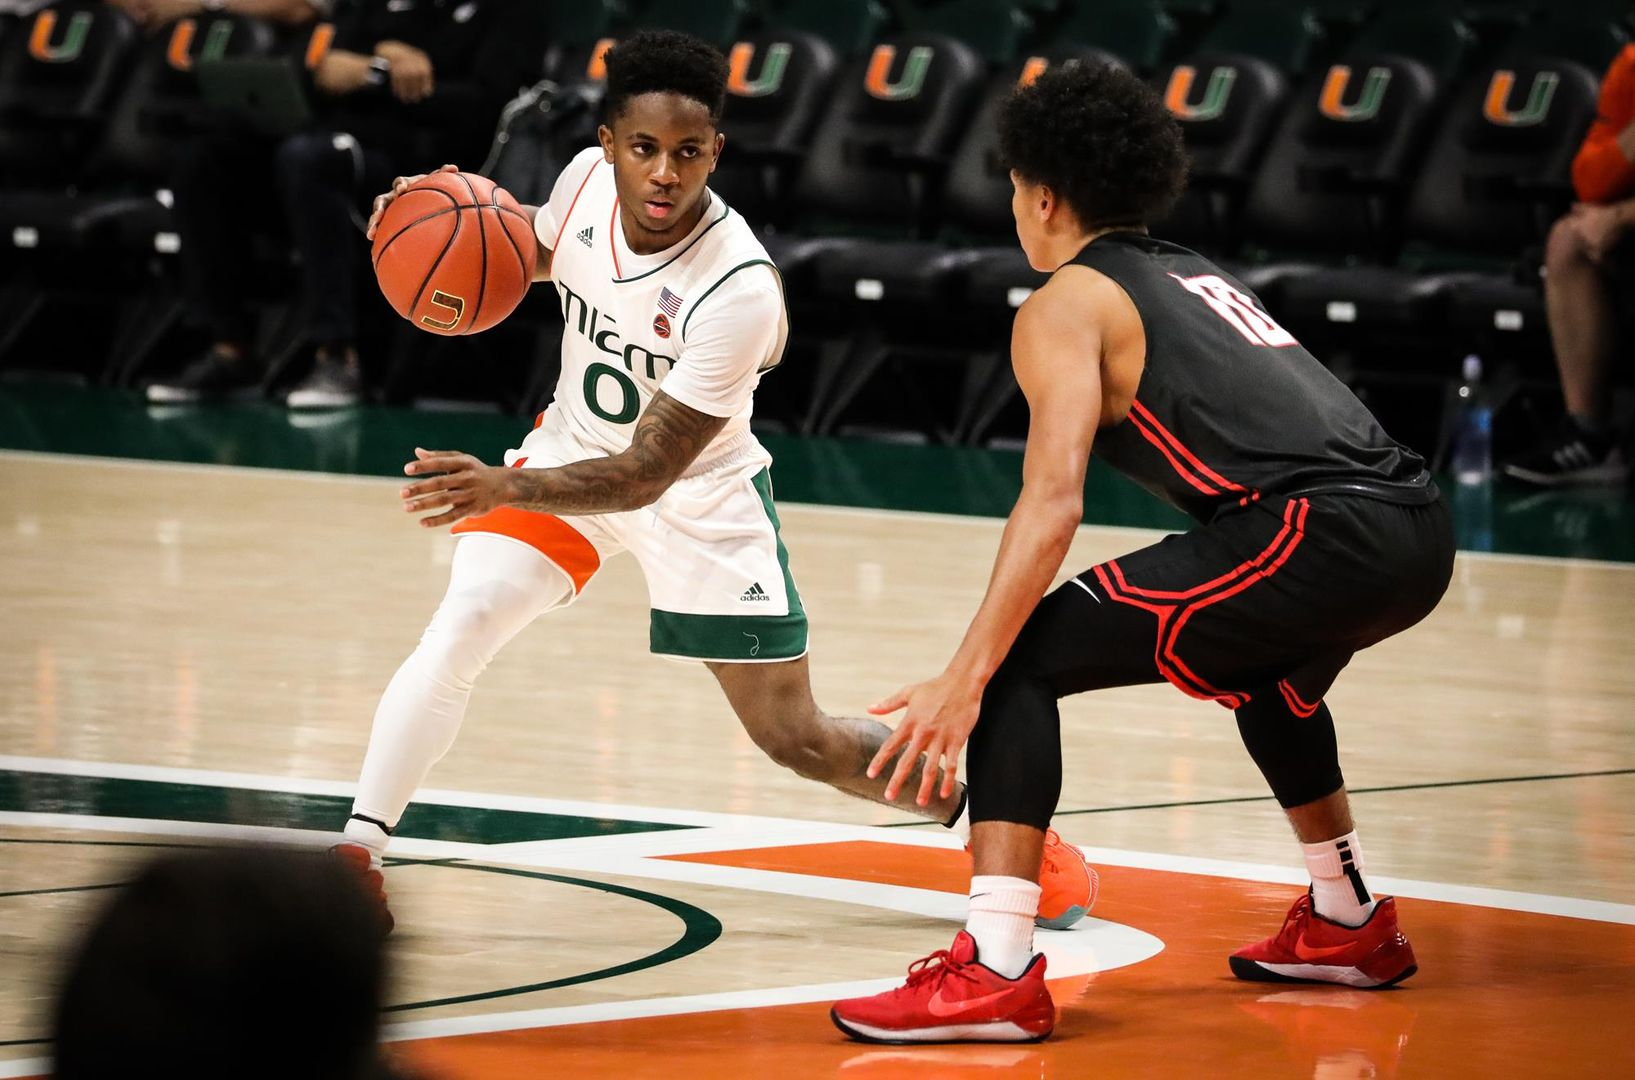 Hurricanes Blow By Barry, 91-61